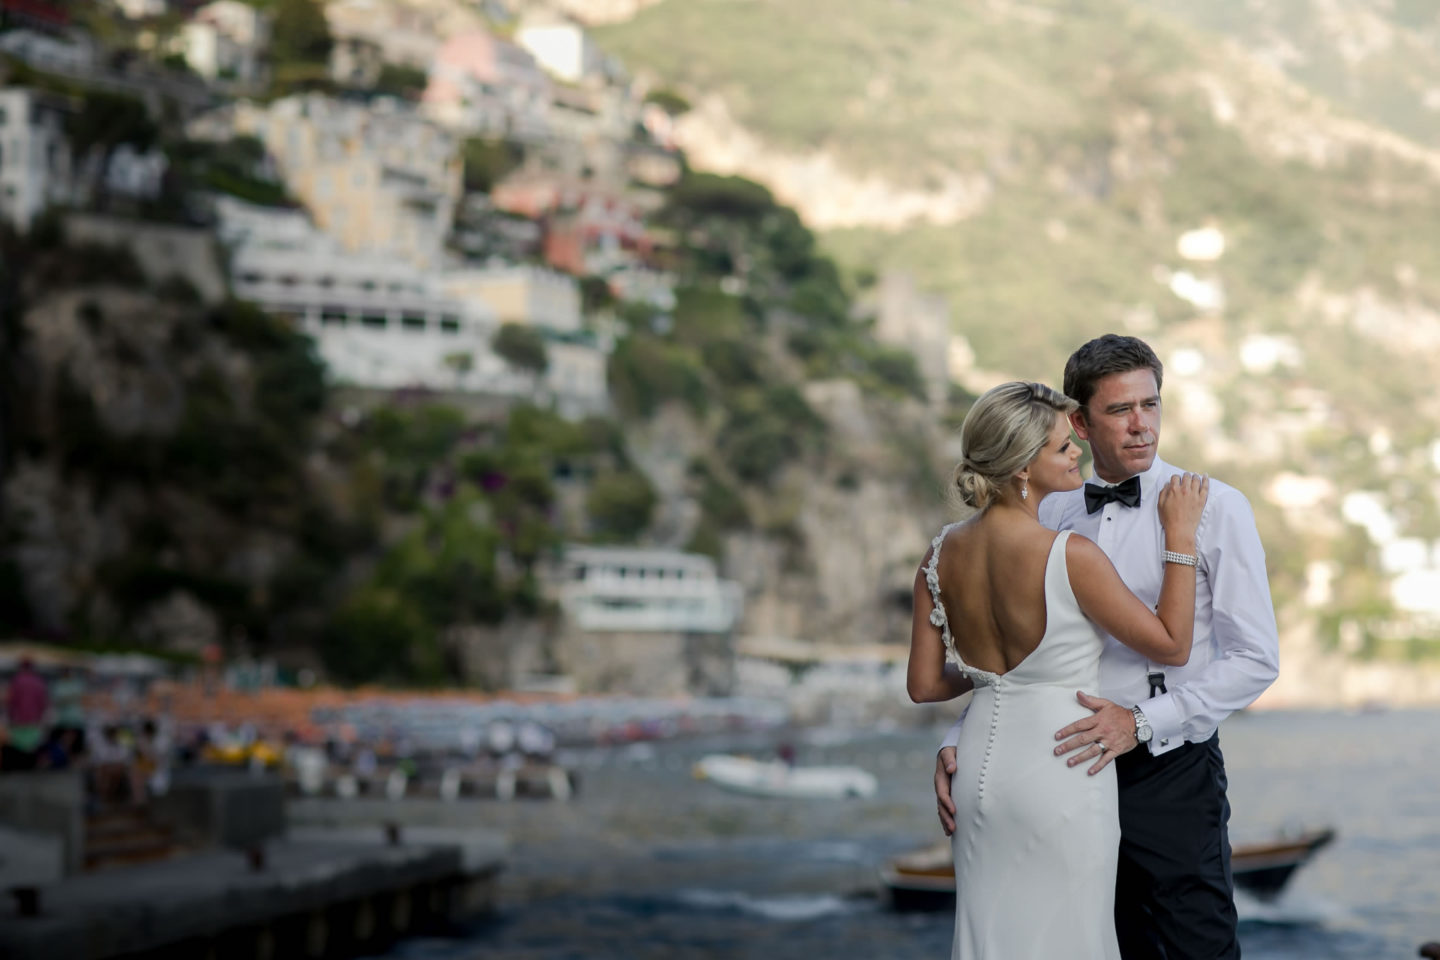 Hill :: Wedding in Positano. Sea and love :: Wedding photographer based in Florence Tuscany Italy :: photo-45 :: Hill